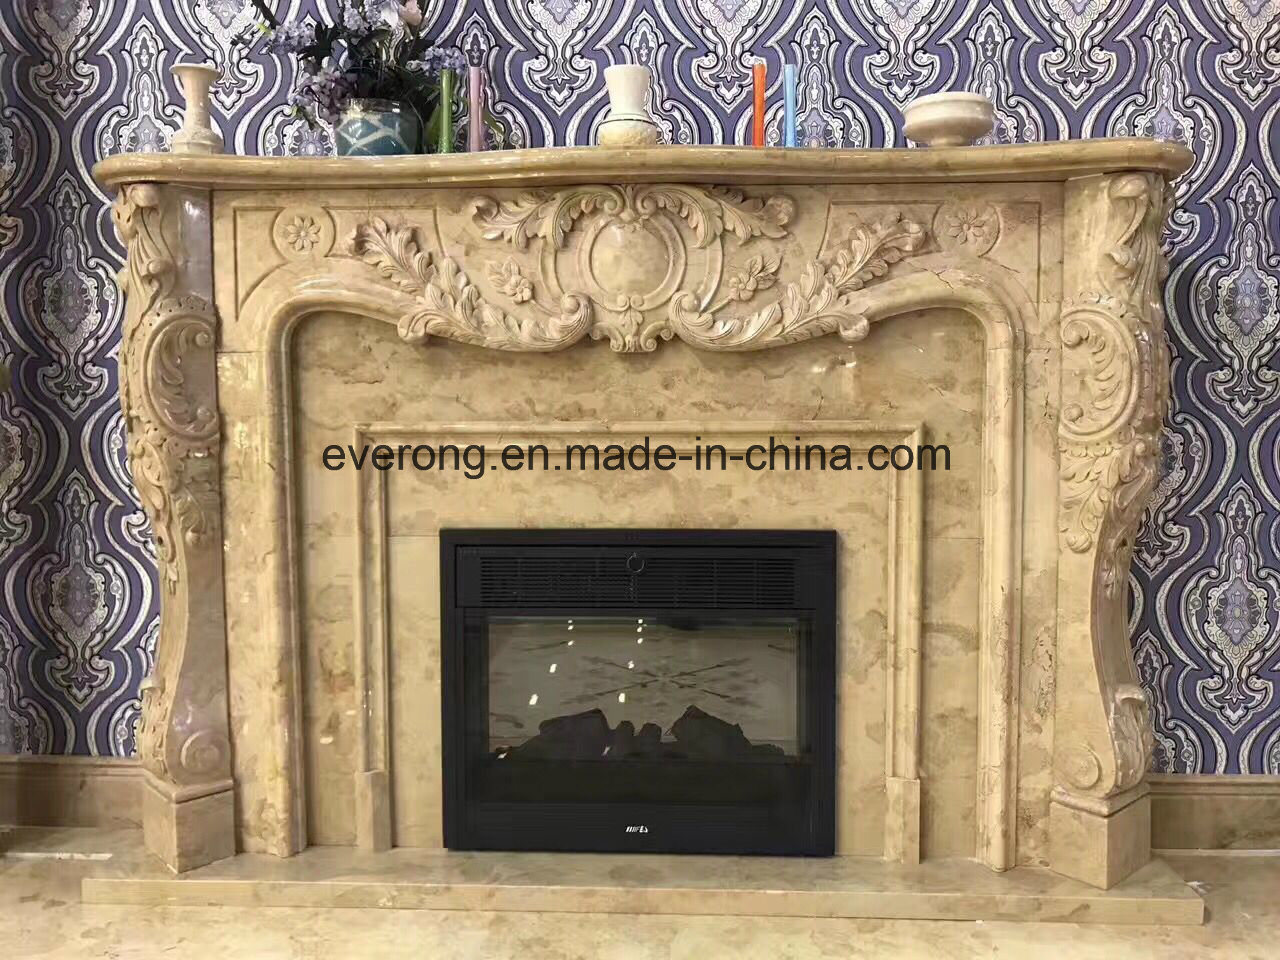 China Marble Carving Stone Sculpture Fireplace Surround Mantel